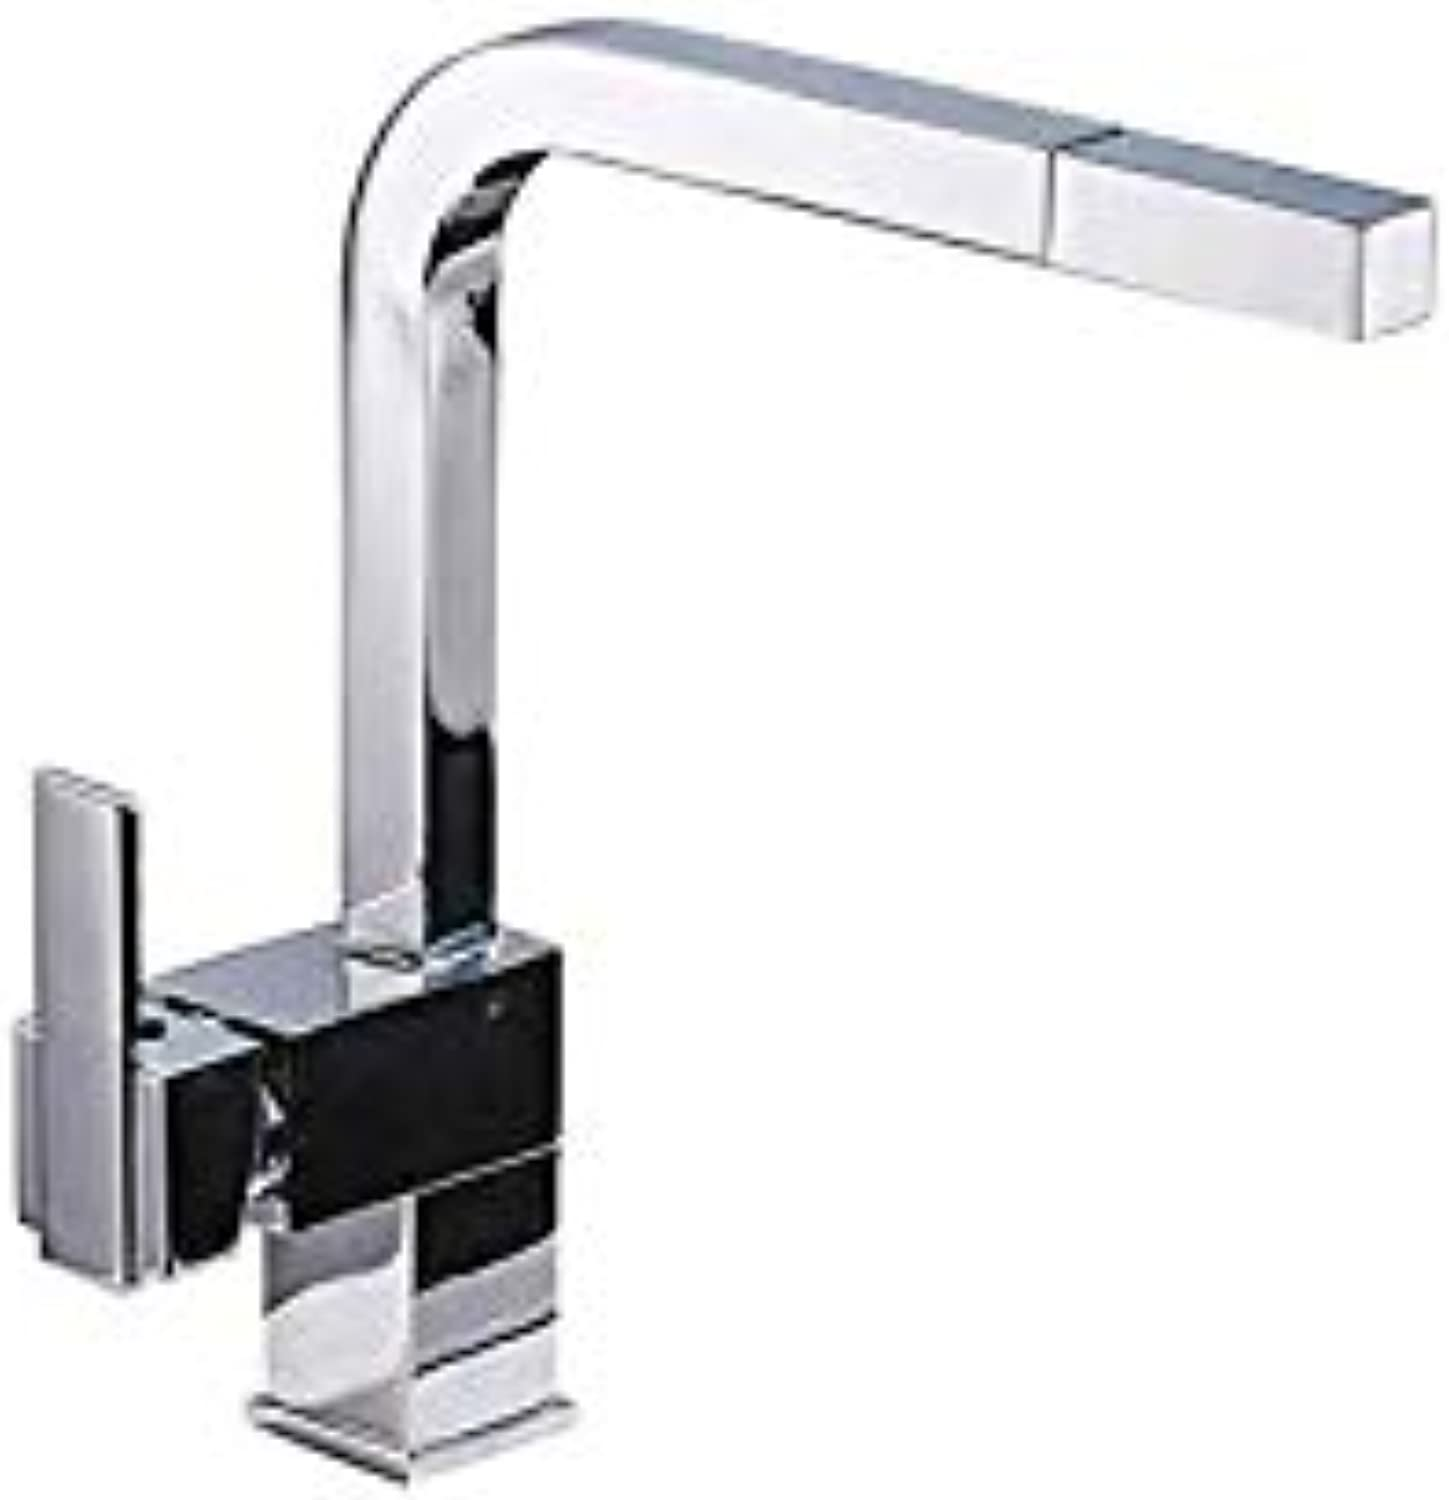 Water Tap Hot and Cold Water Faucet_High-End Kitchen Pull-Type Hot and Cold Water Faucet Square Single Hole Single Handle